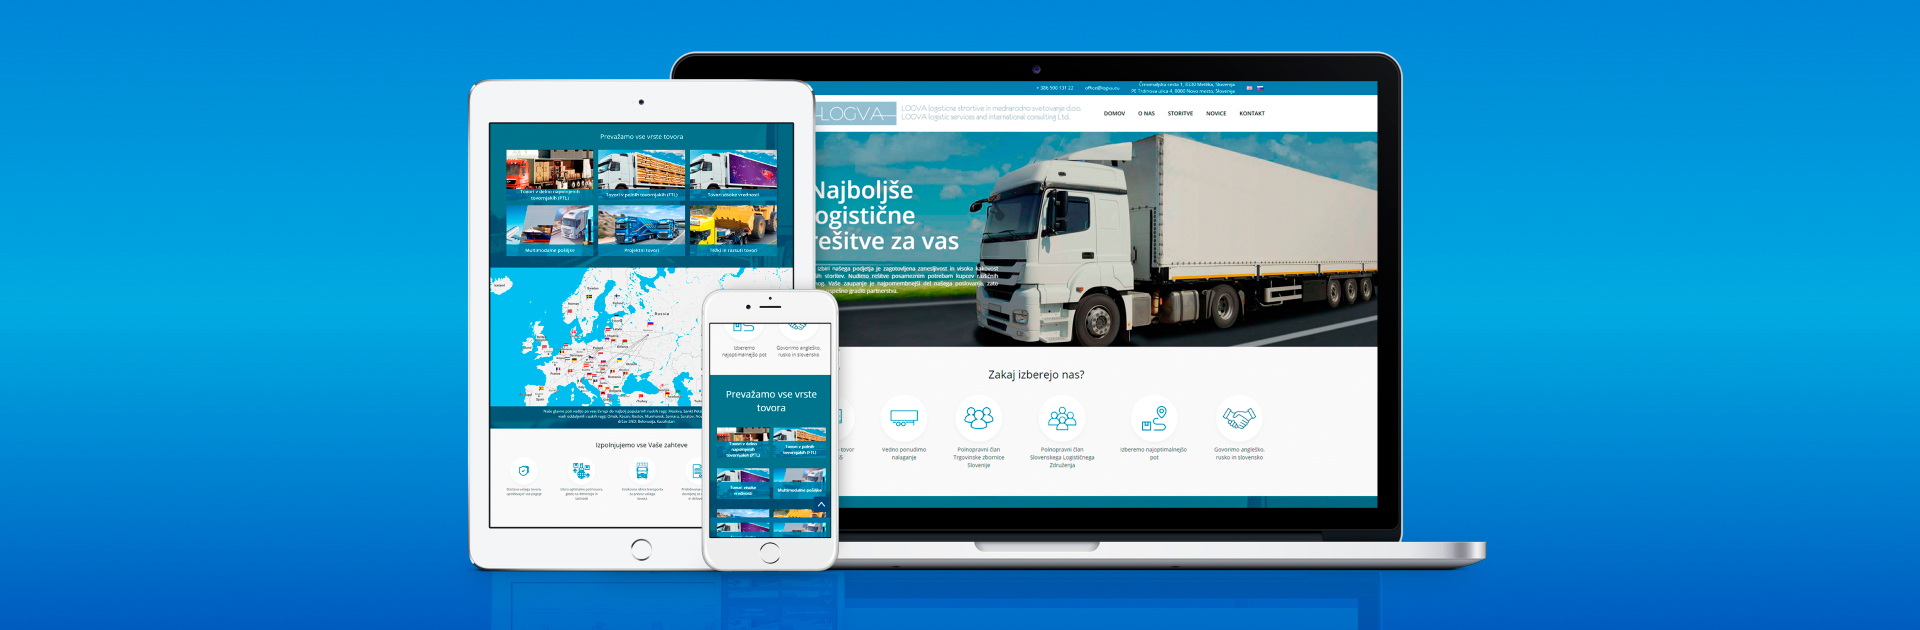 Making a corporate website for a transport organization